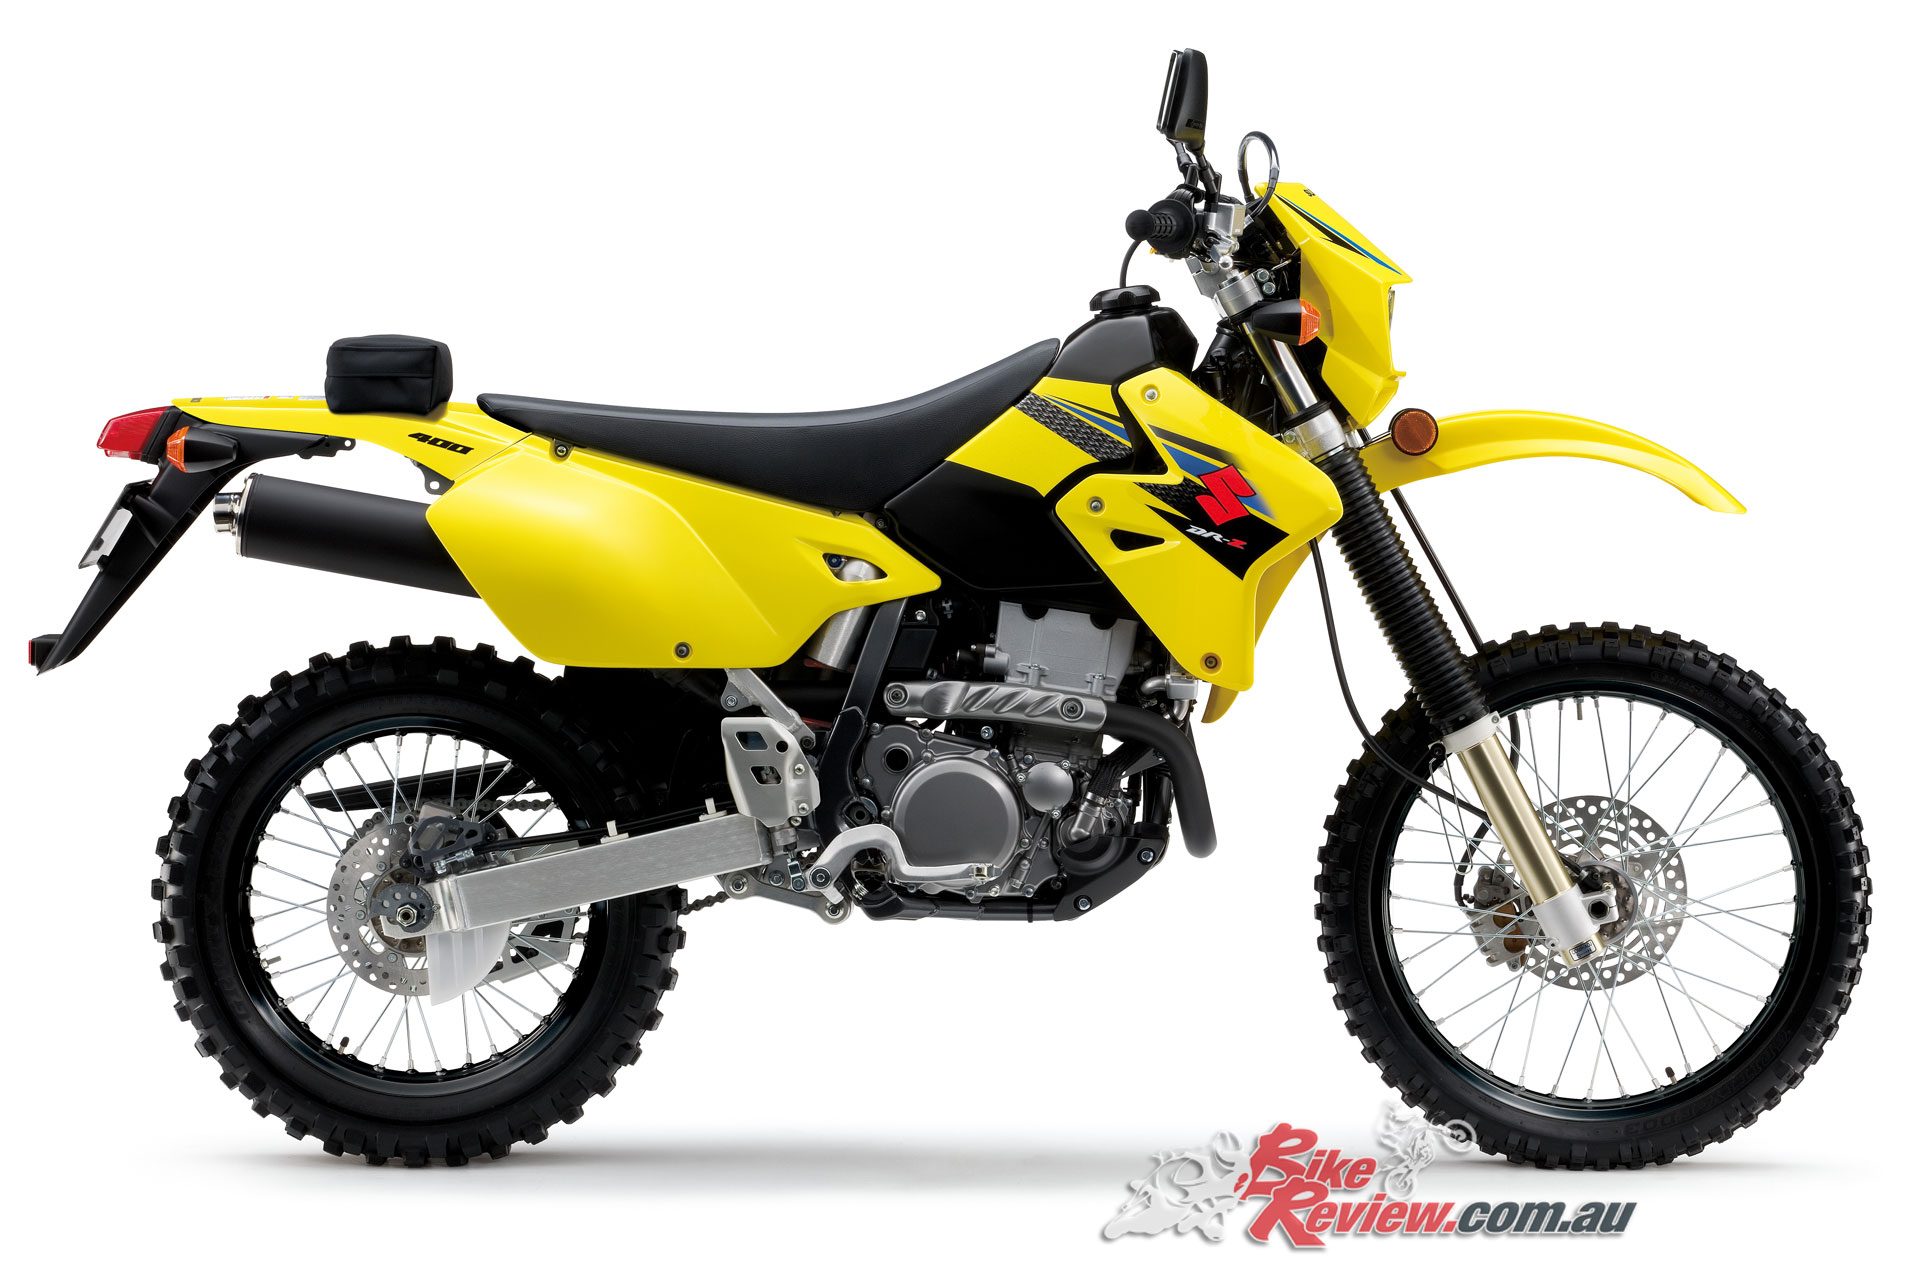 2018 Suzuki Dr Z400e Sale Now